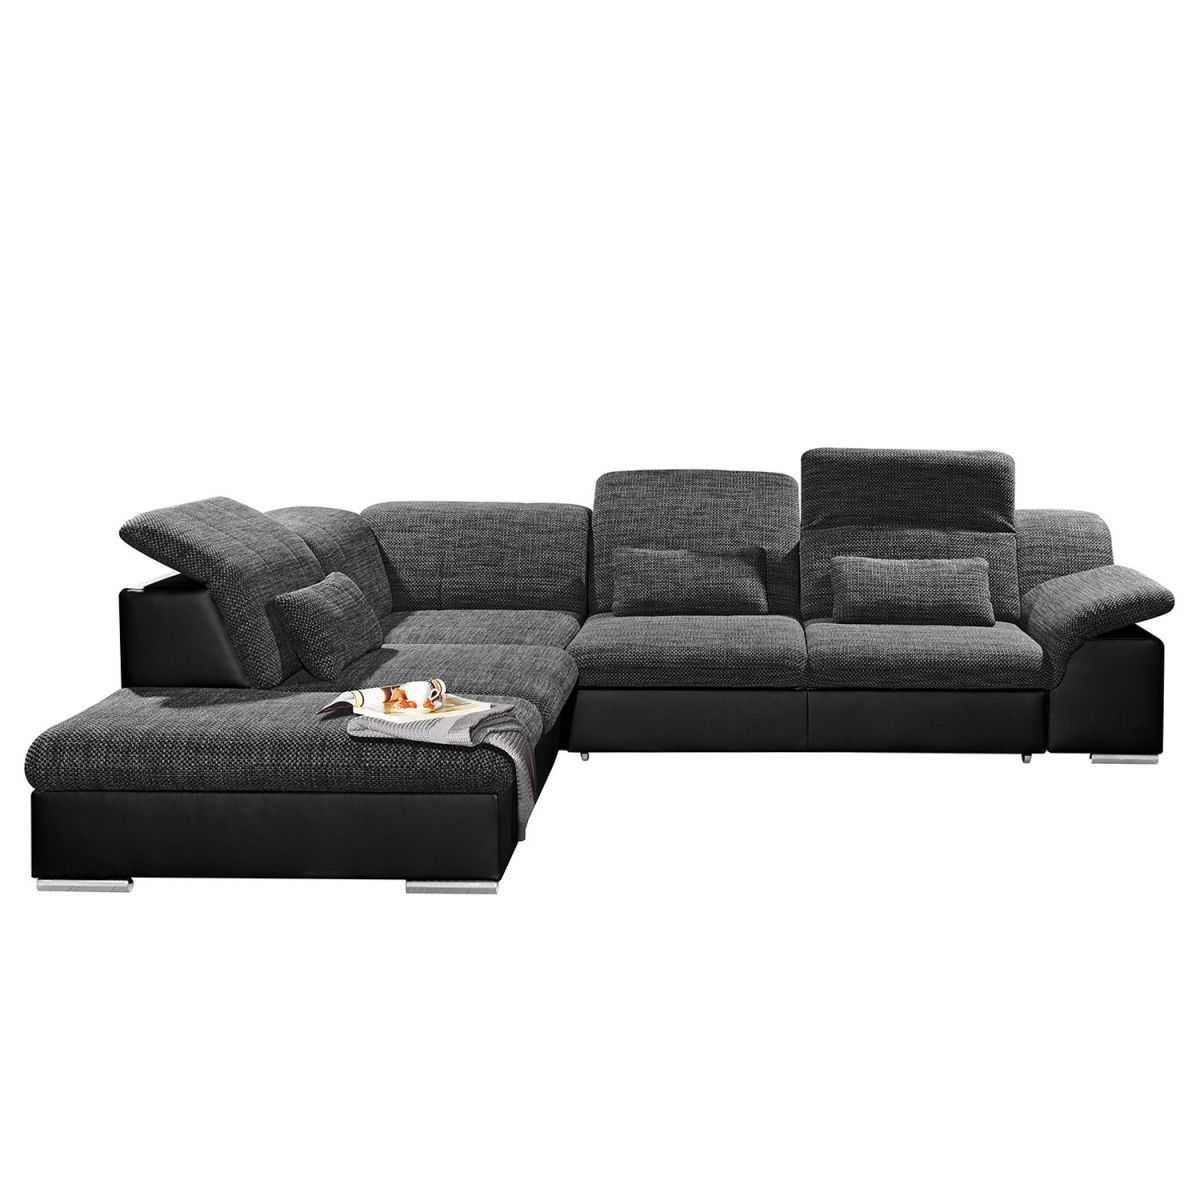 ecksofa mikano mit schlaffunktion sitztiefenverstellung. Black Bedroom Furniture Sets. Home Design Ideas